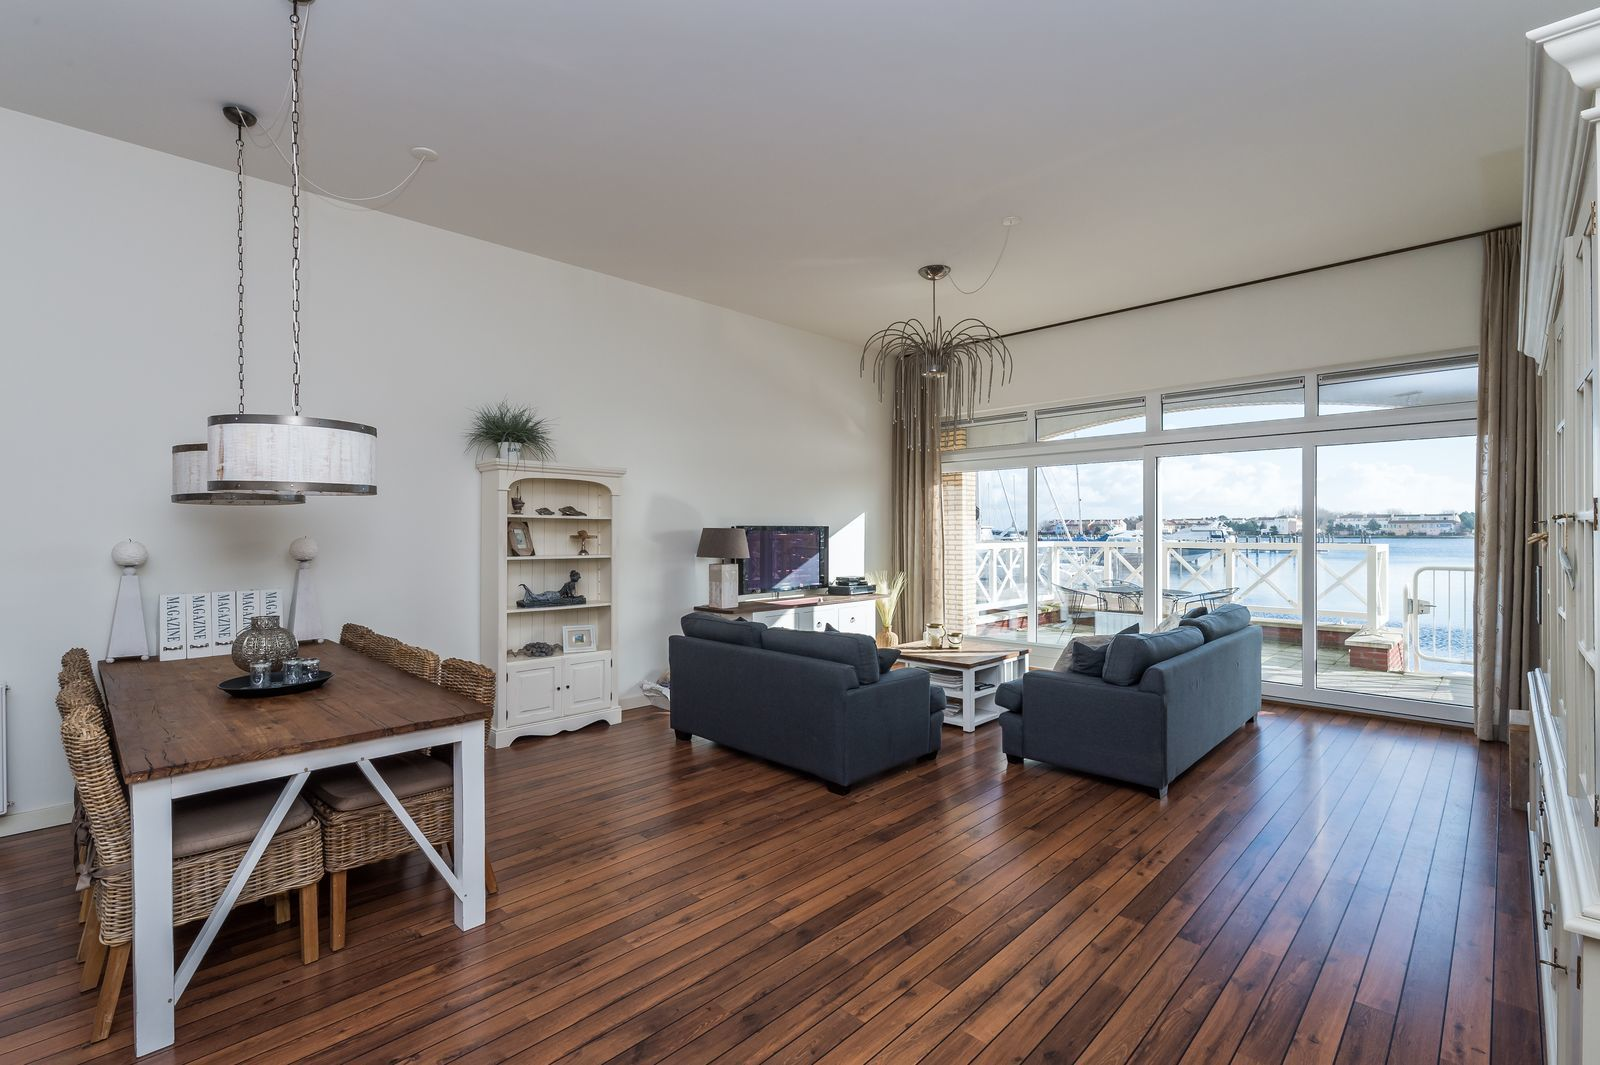 Appartement Port Zélande Marina (6 personen) - Ouddorp (4.05)